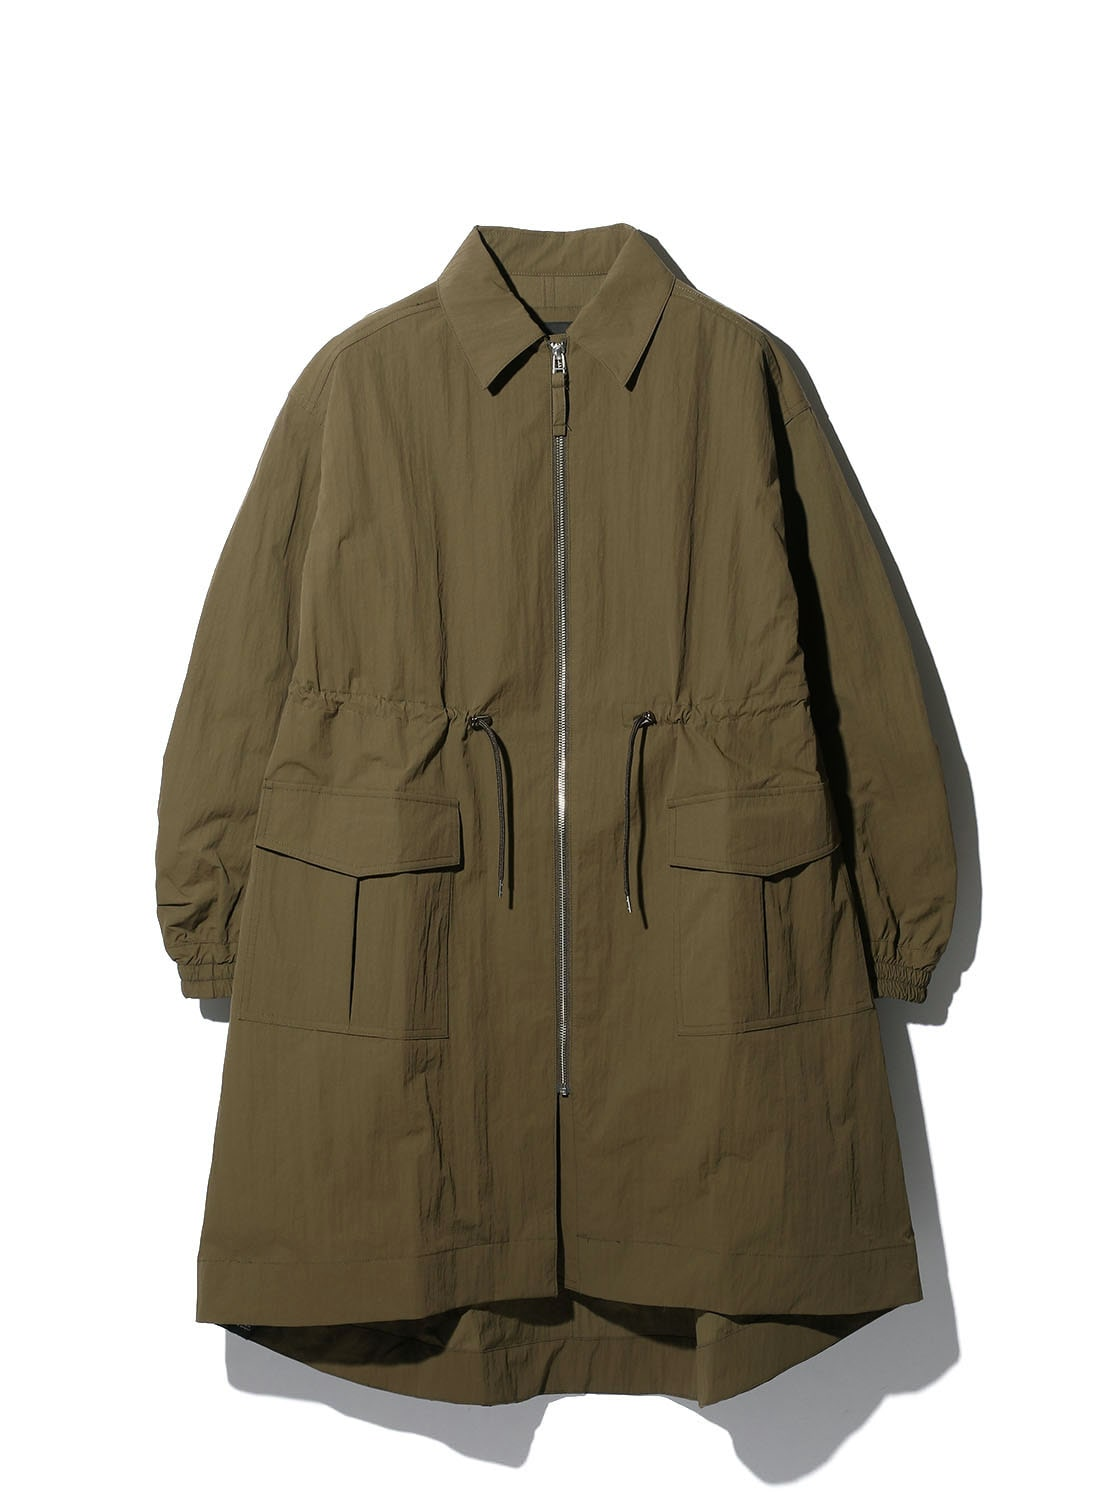 【日本限定】 HELMONT NYLON COAT